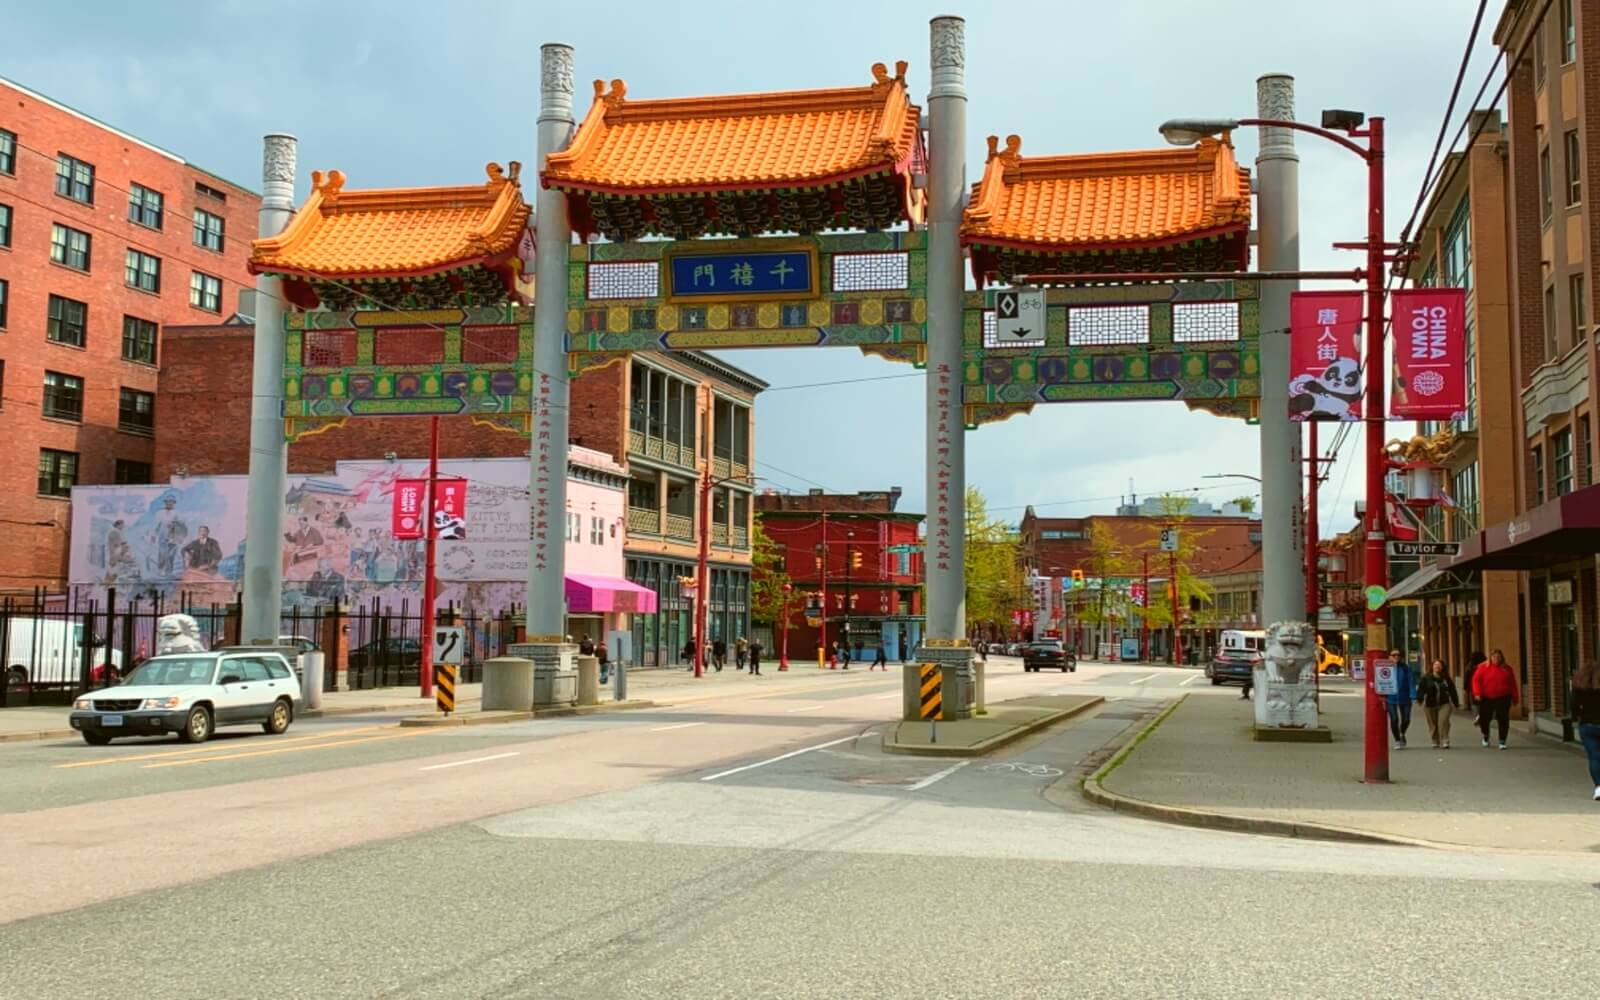 The Millenium Gate at the entrance to Chinatown